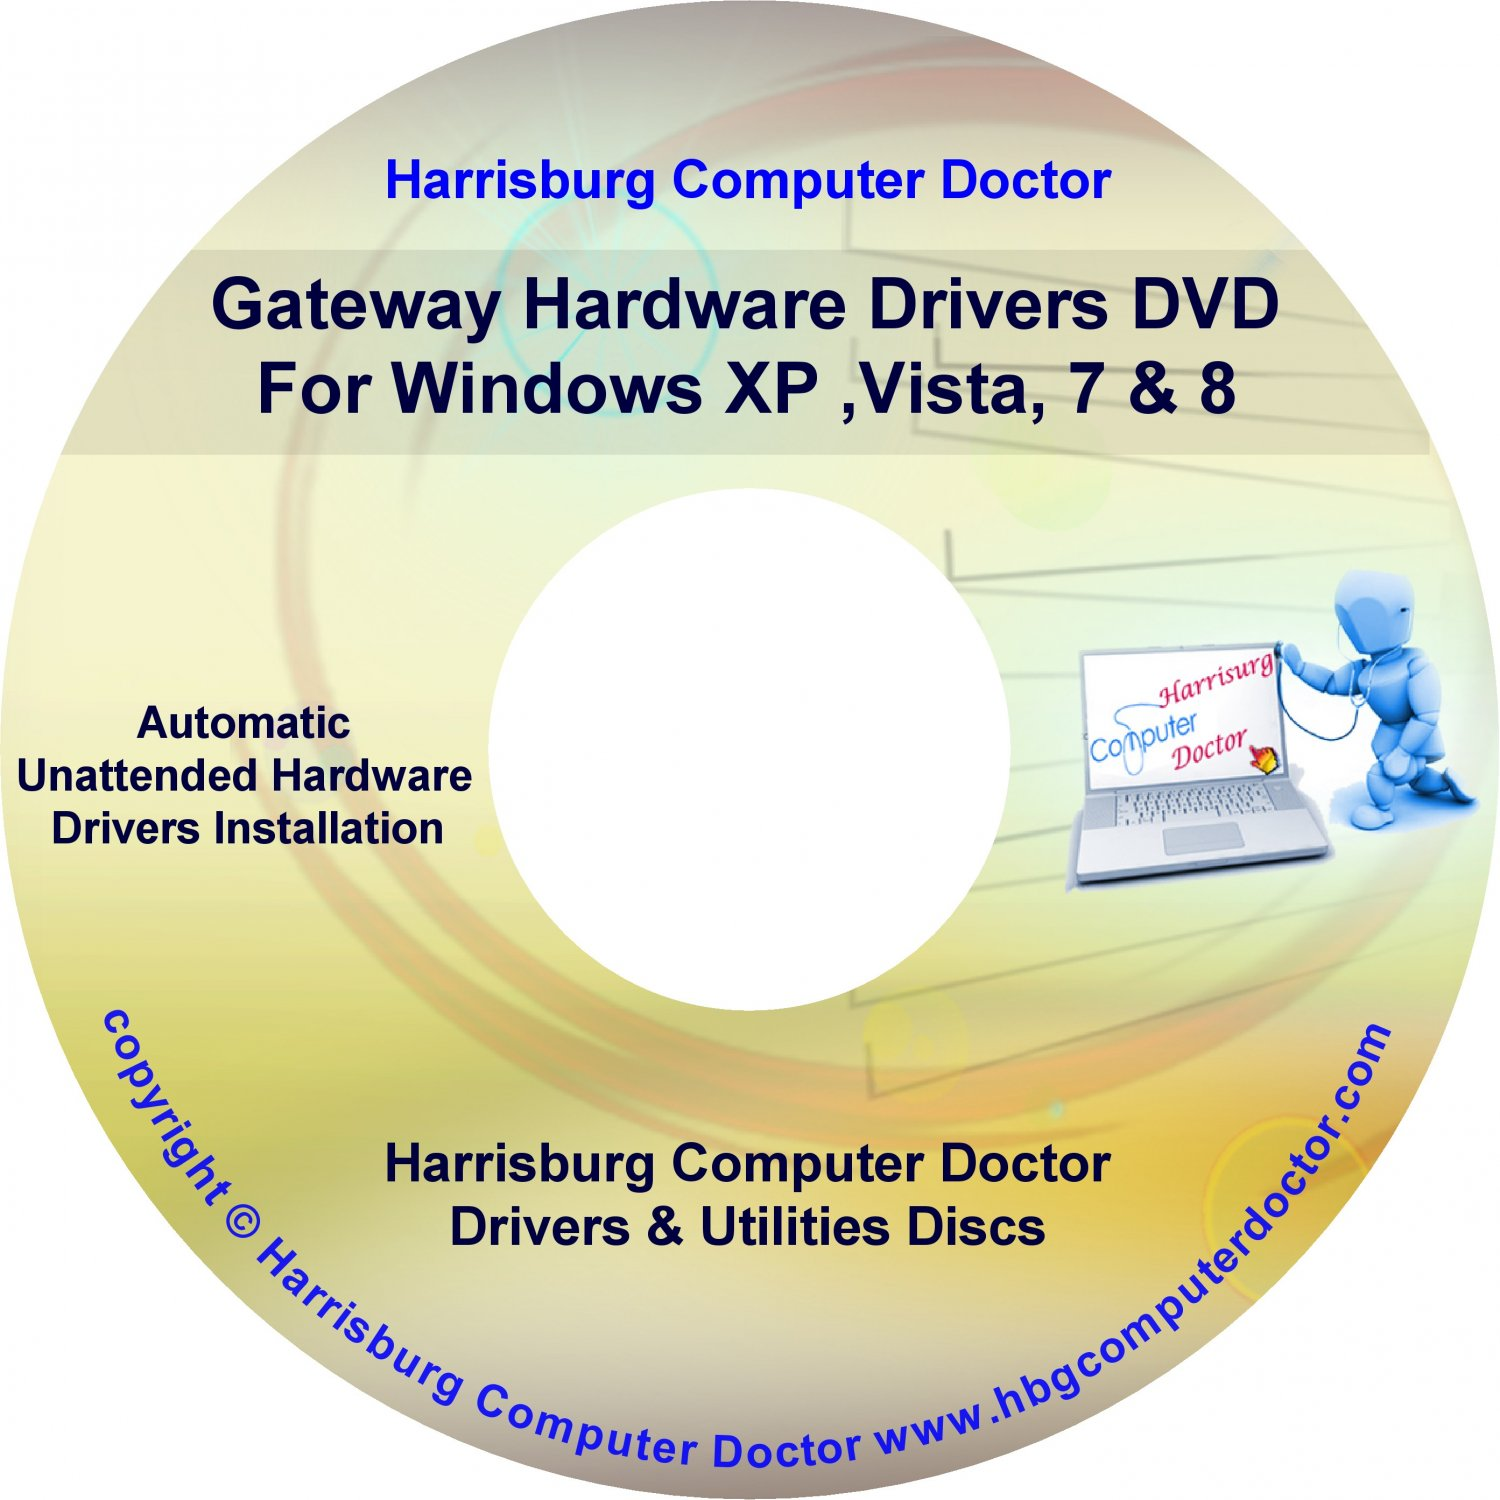 Gateway T-6303c Drivers DVD For Windows, XP, Vista, 7 & 8